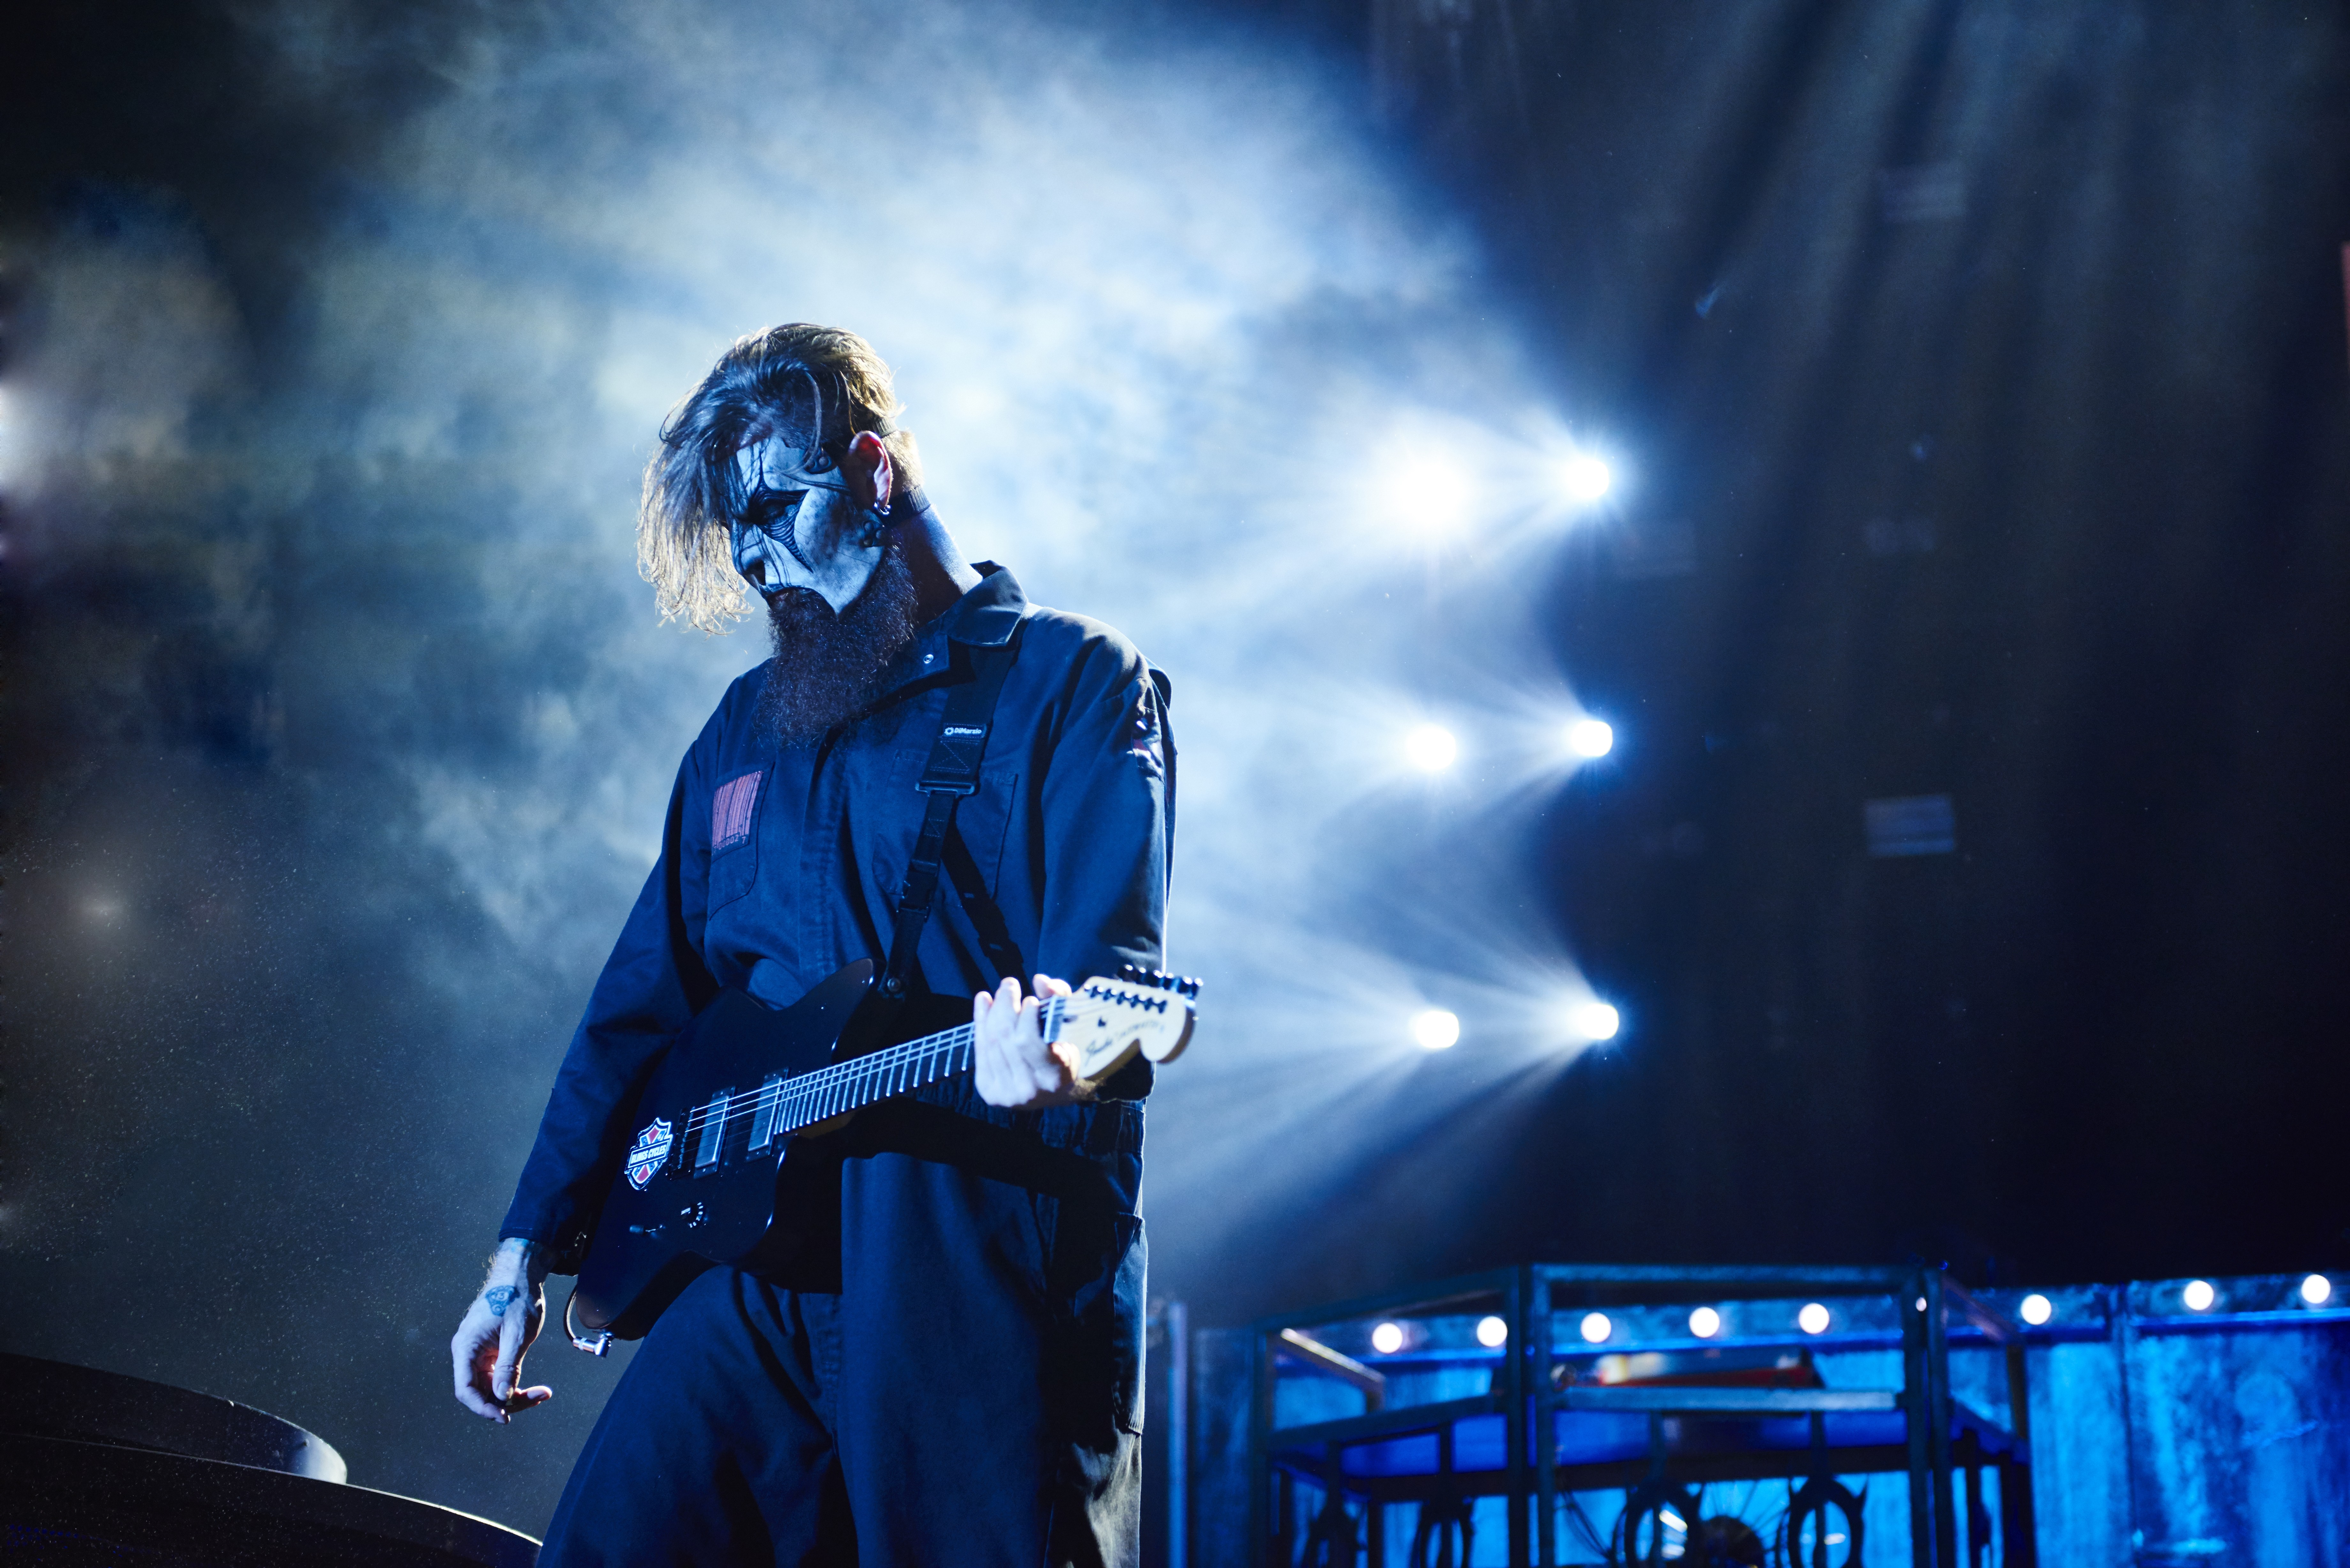 slipknot-perform-unsainted-all-out-life-on-kimmel-watch